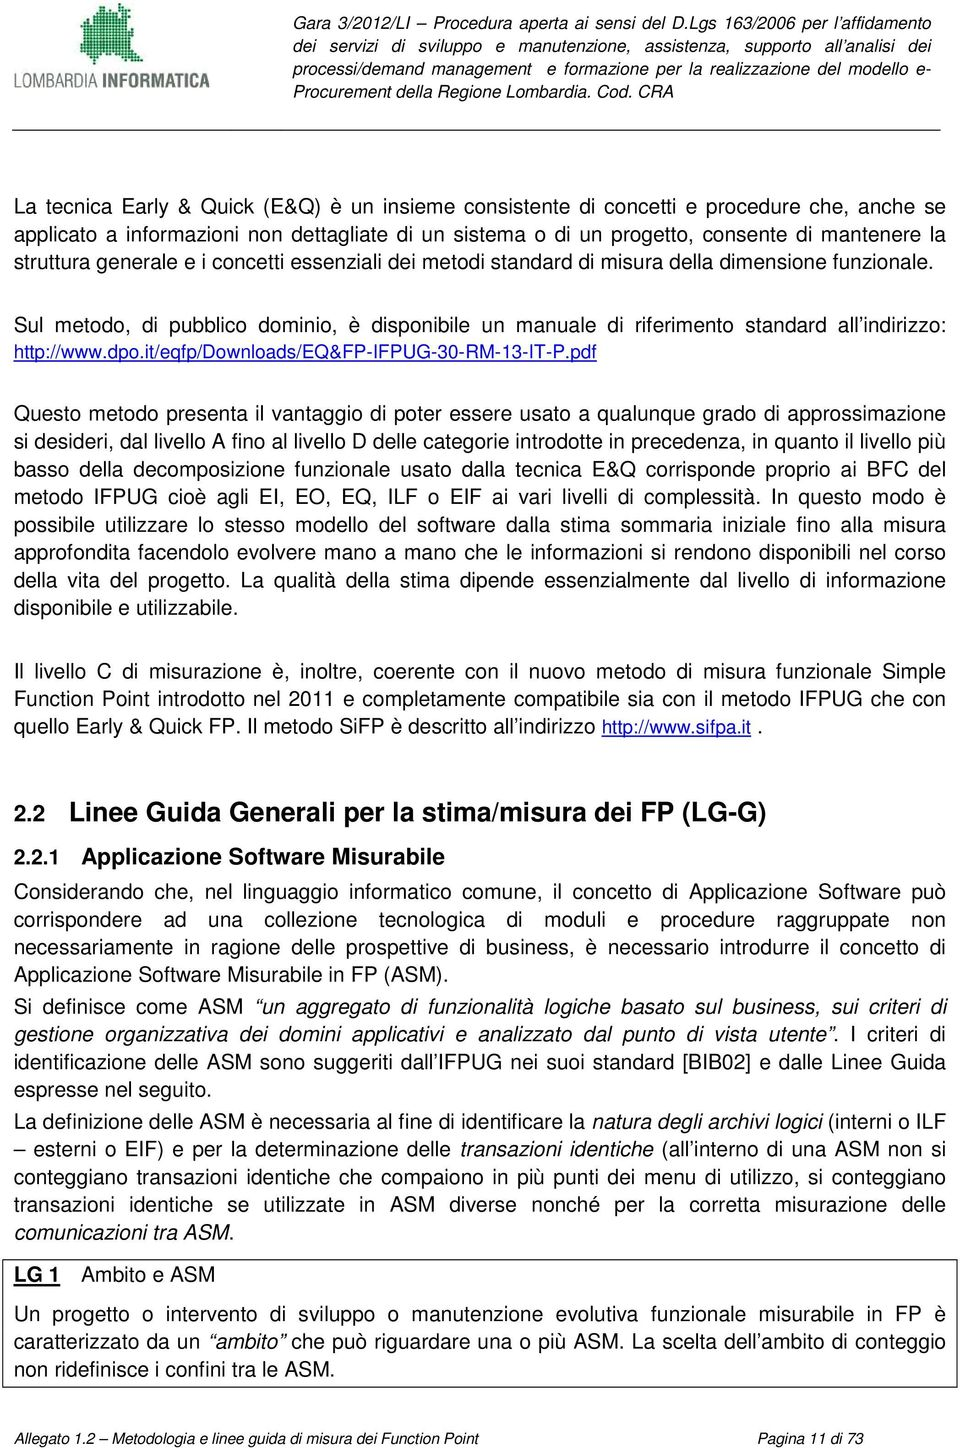 Sul metodo, di pubblico dominio, è disponibile un manuale di riferimento standard all indirizzo: http://www.dpo.it/eqfp/downloads/eq&fp-ifpug-30-rm-13-it-p.